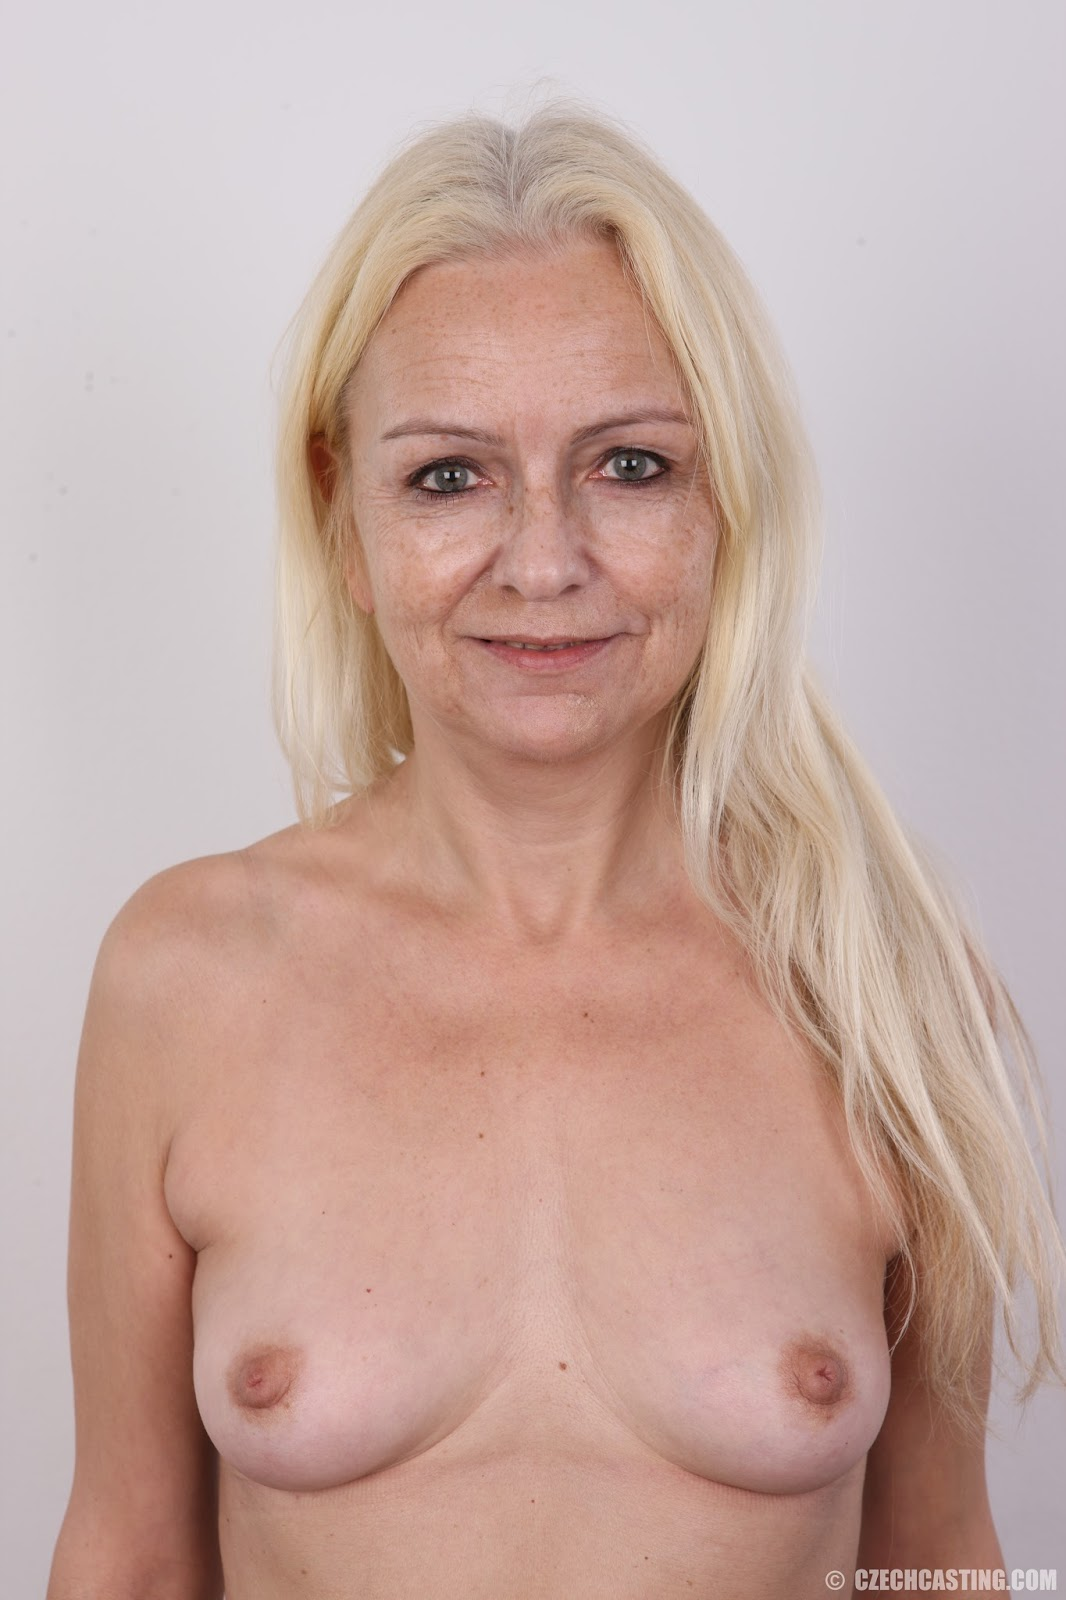 sex image of the old woman